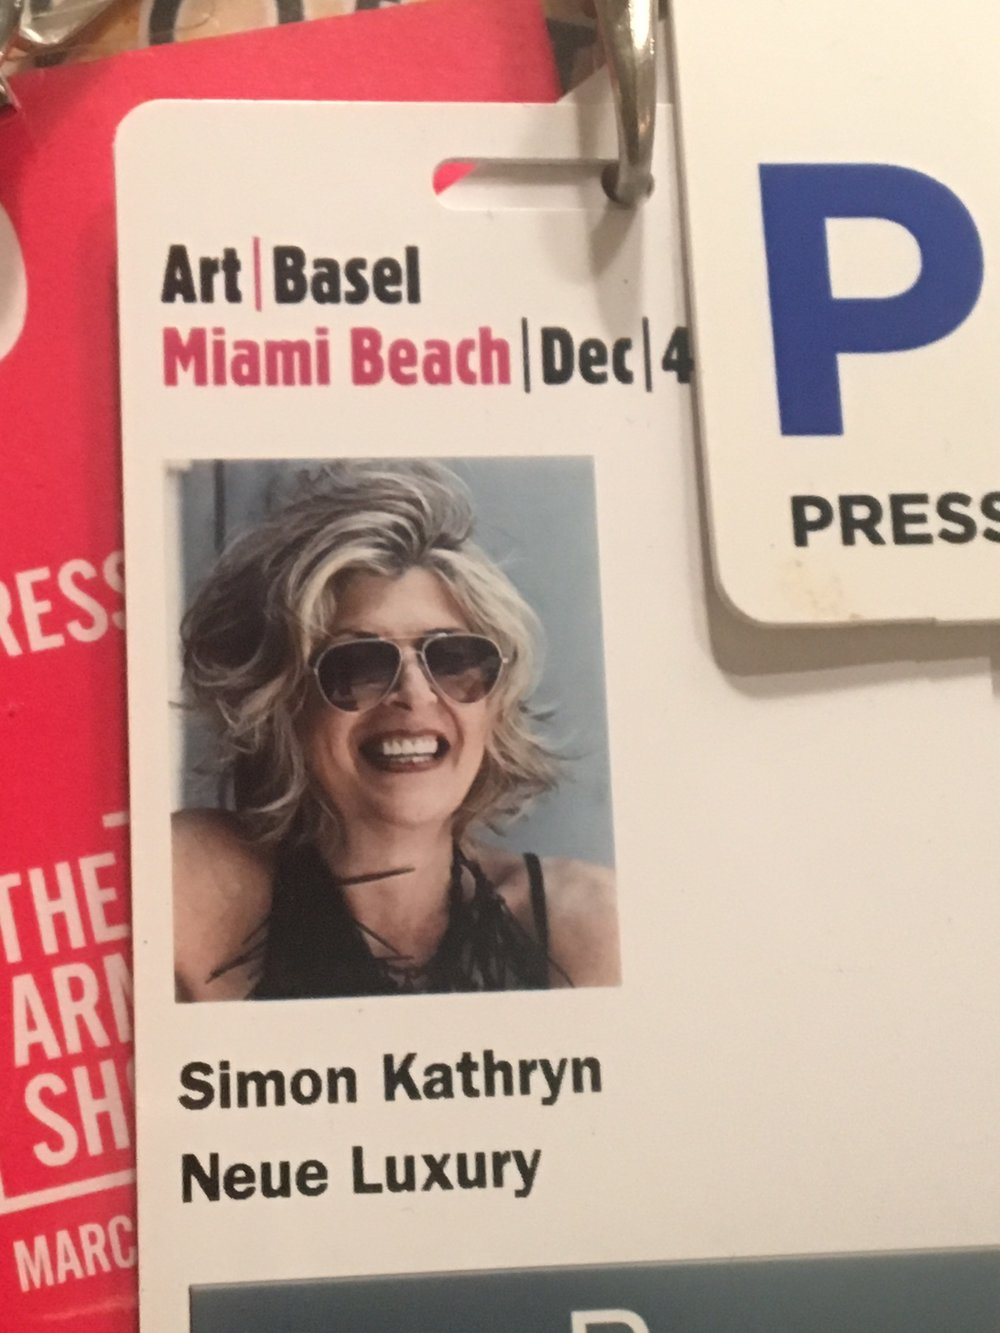 art basel press photo.JPG